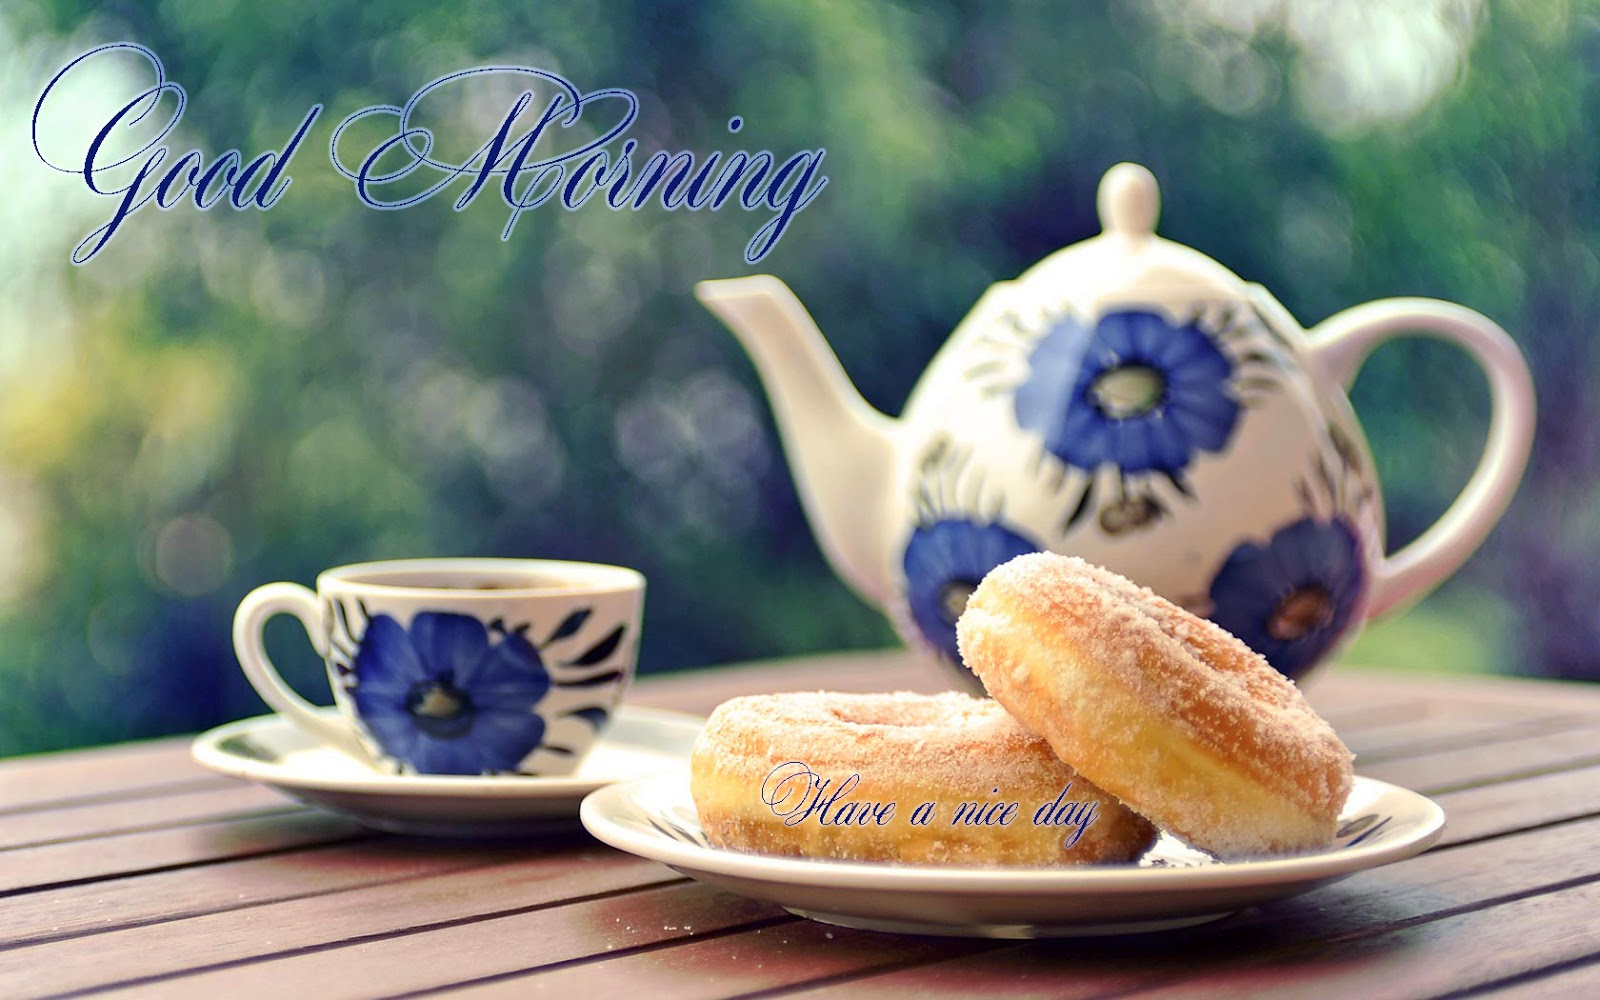 Good Morning Tea With Breakfast : Fine wallpapers hd download high resolution of